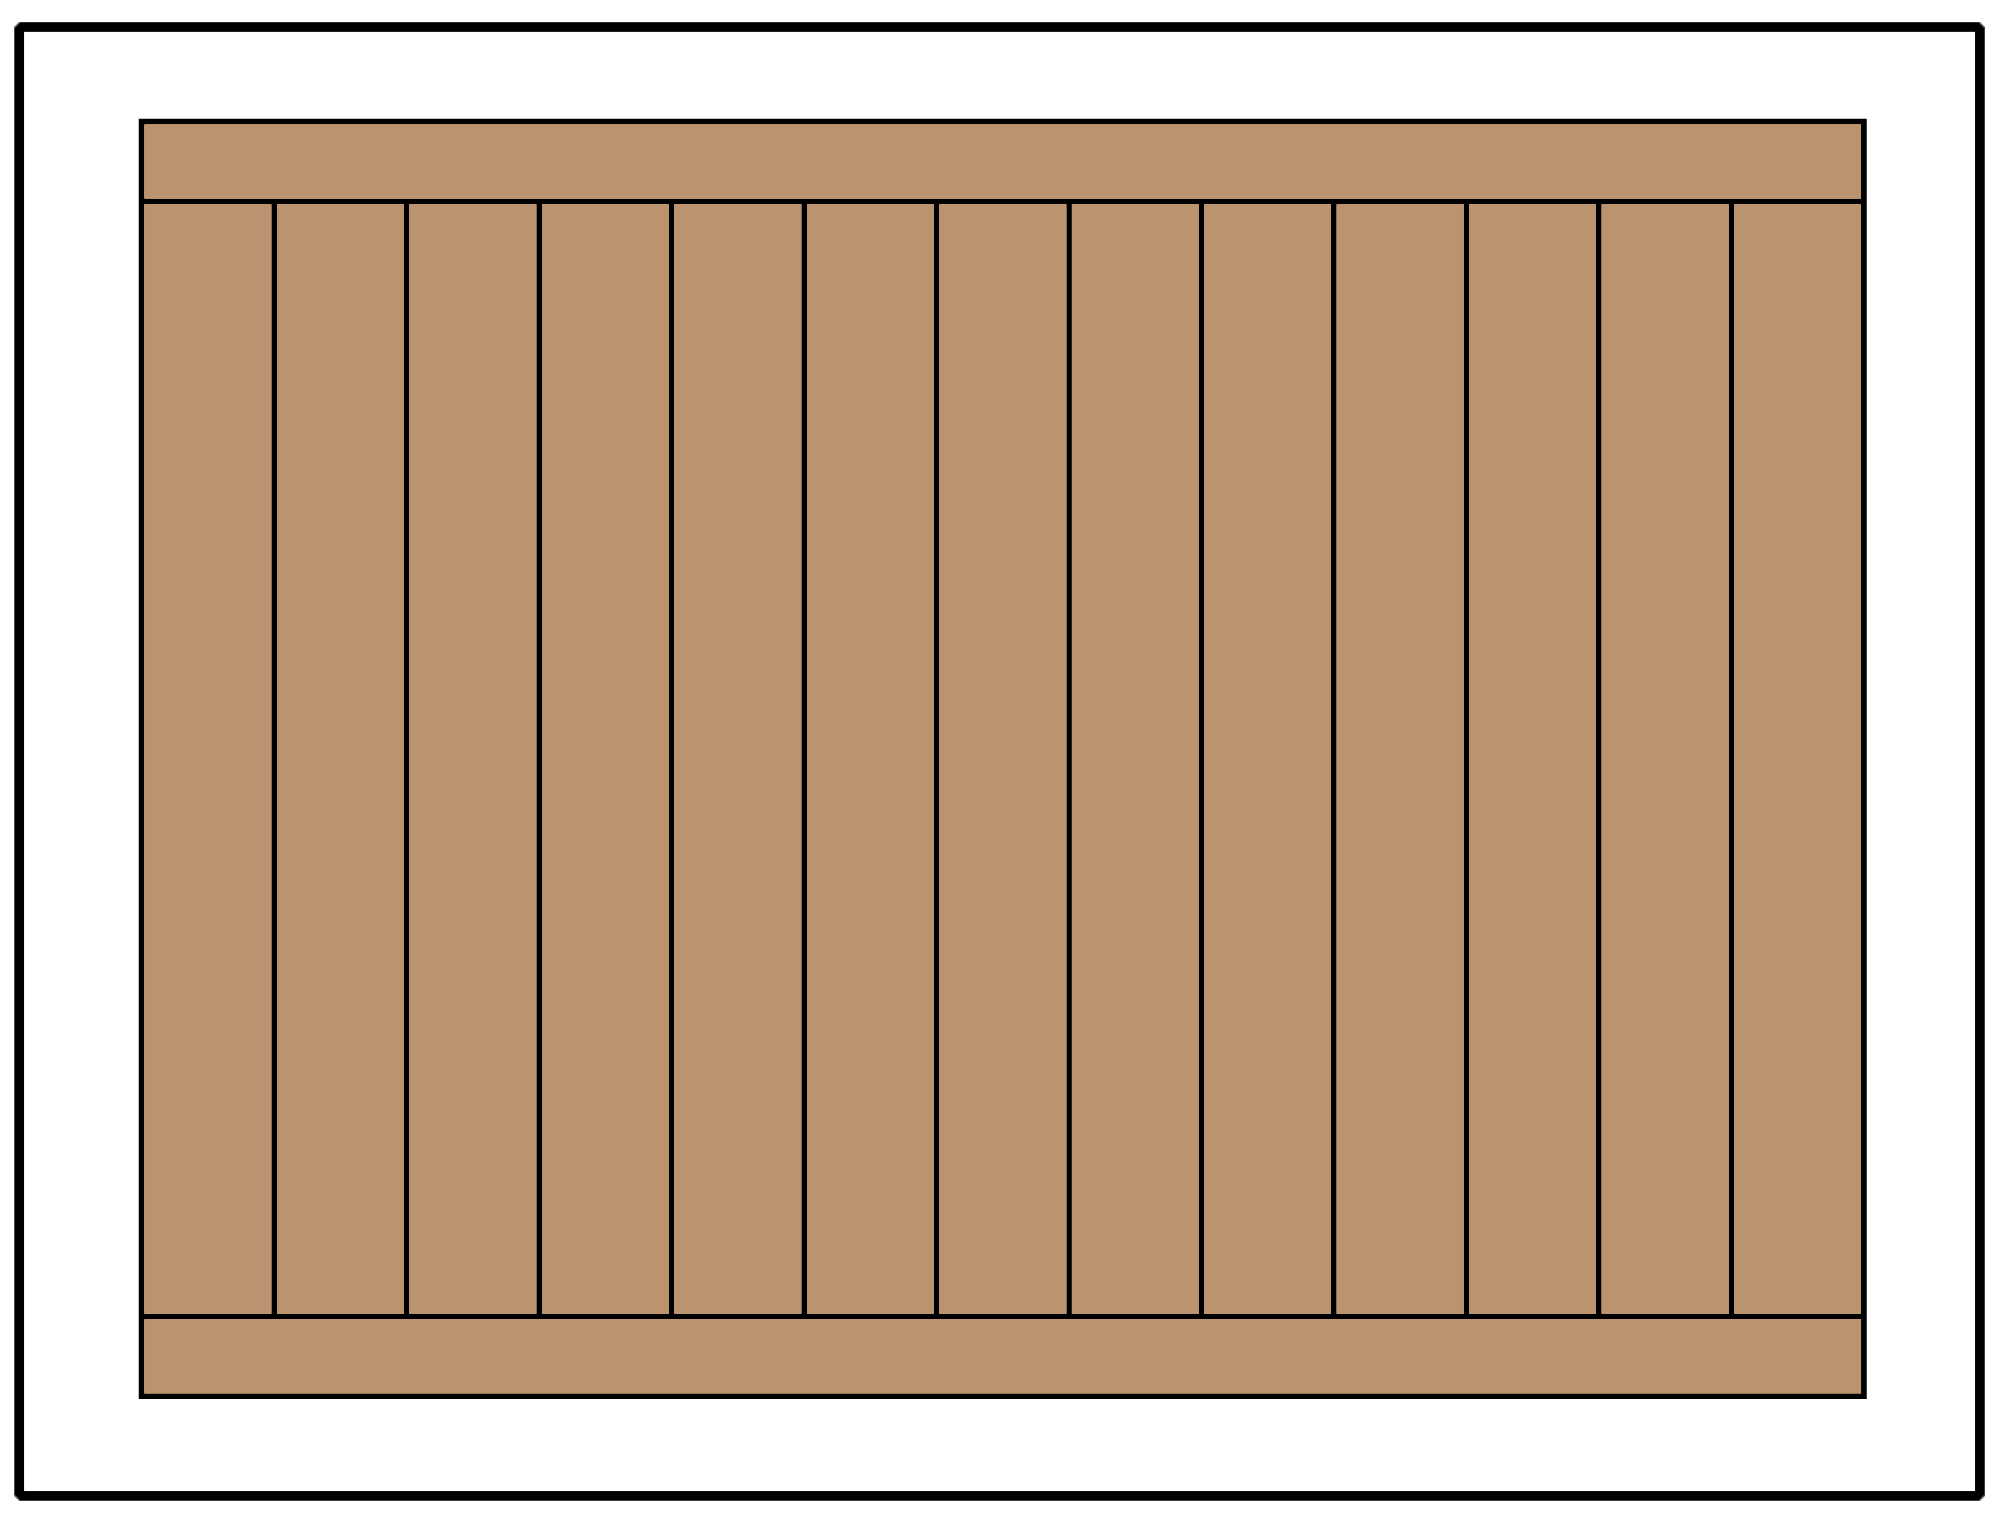 Illustration of a framed style privacy fence